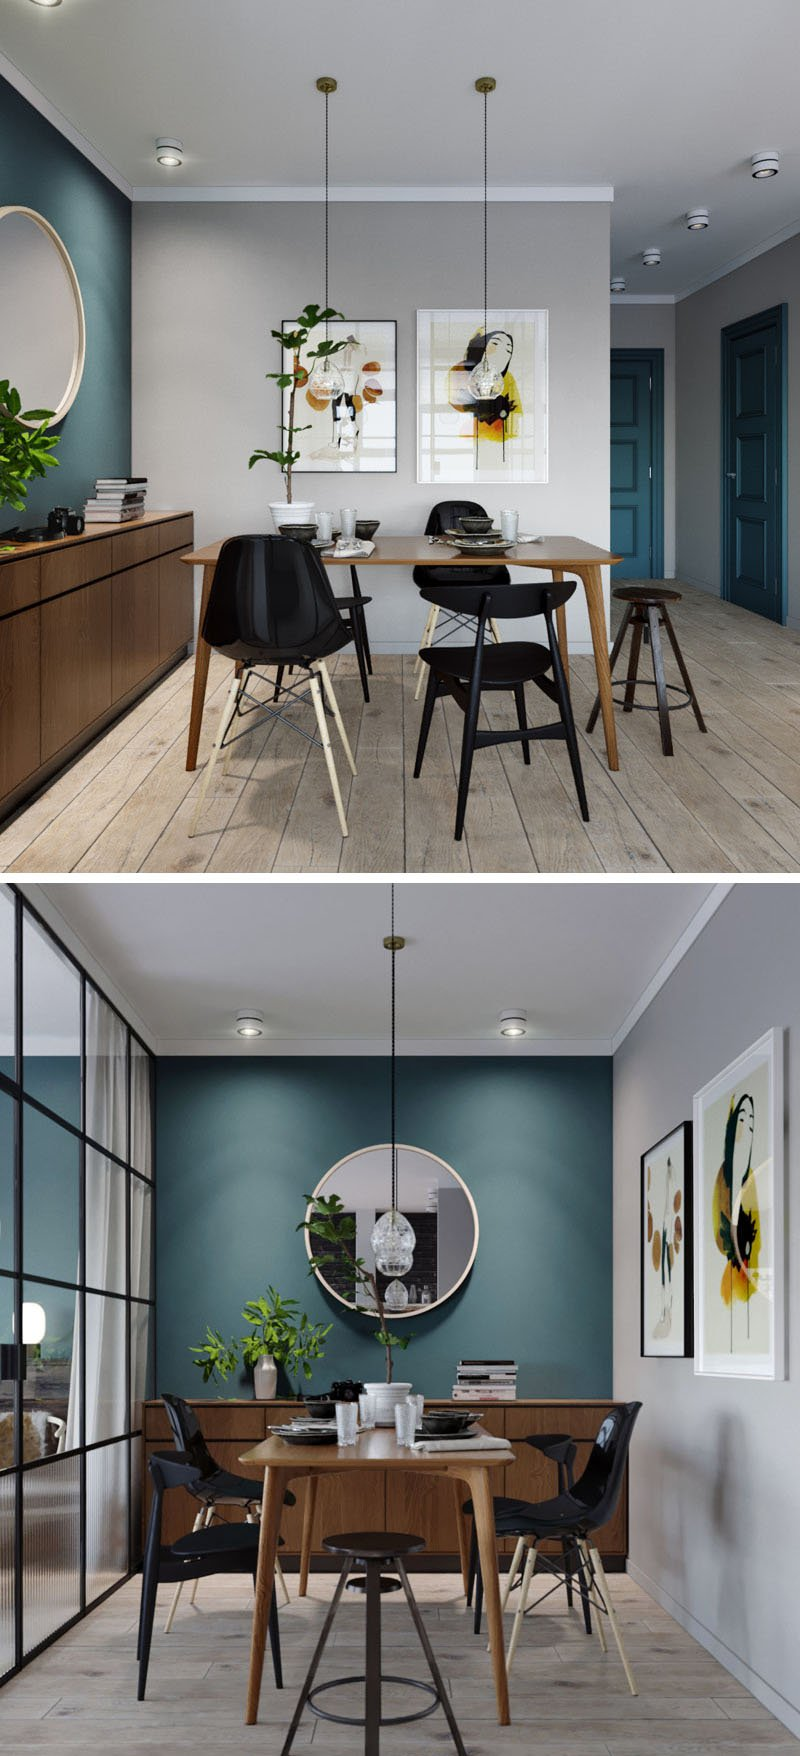 Mur Bleu Canard Et Style Loft Blog D Co Clem Around